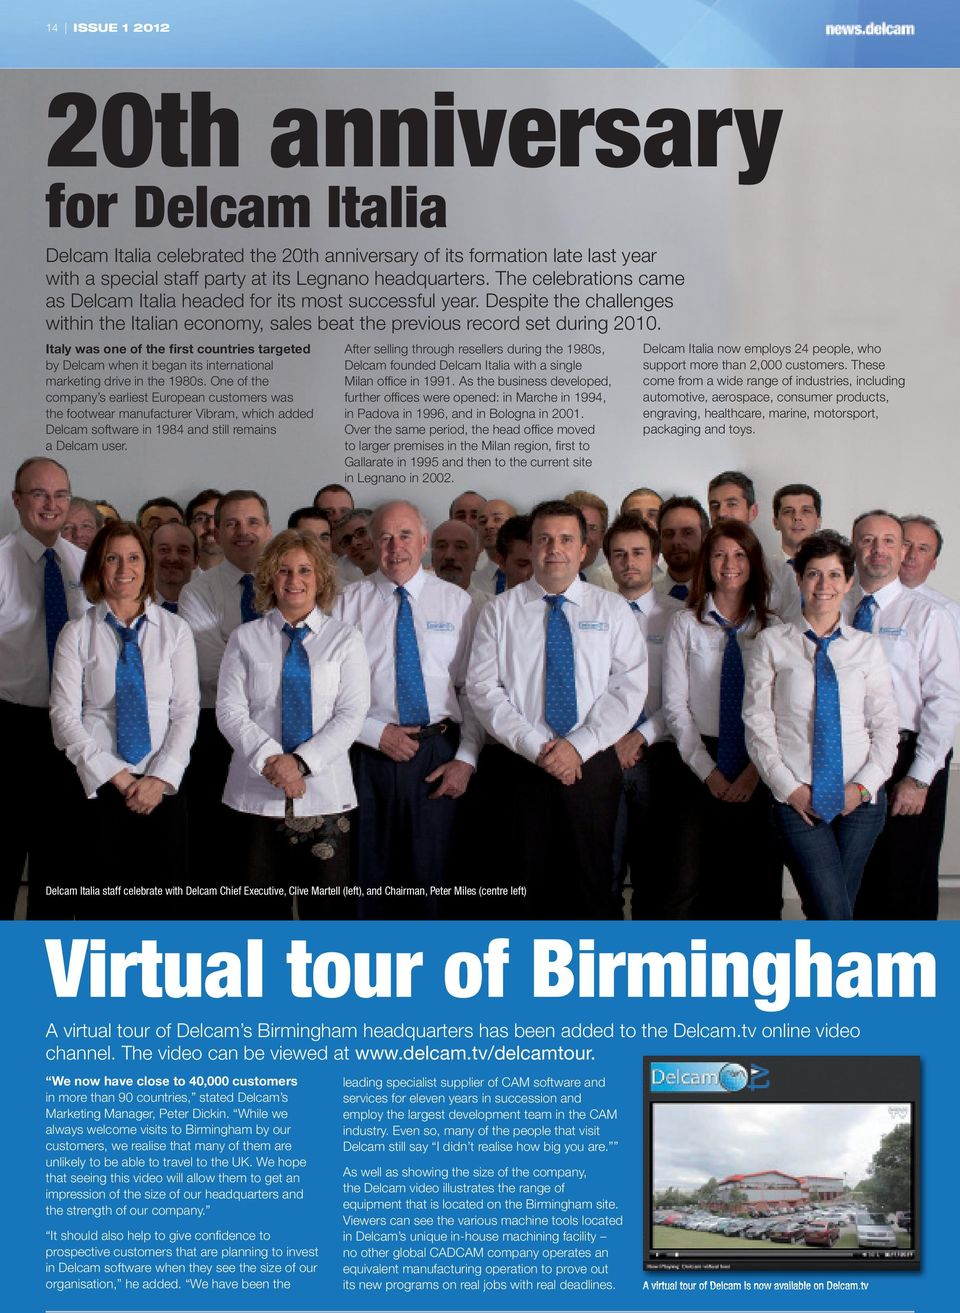 Italy was one of the first countries targeted by Delcam when it began its international marketing drive in the 1980s.